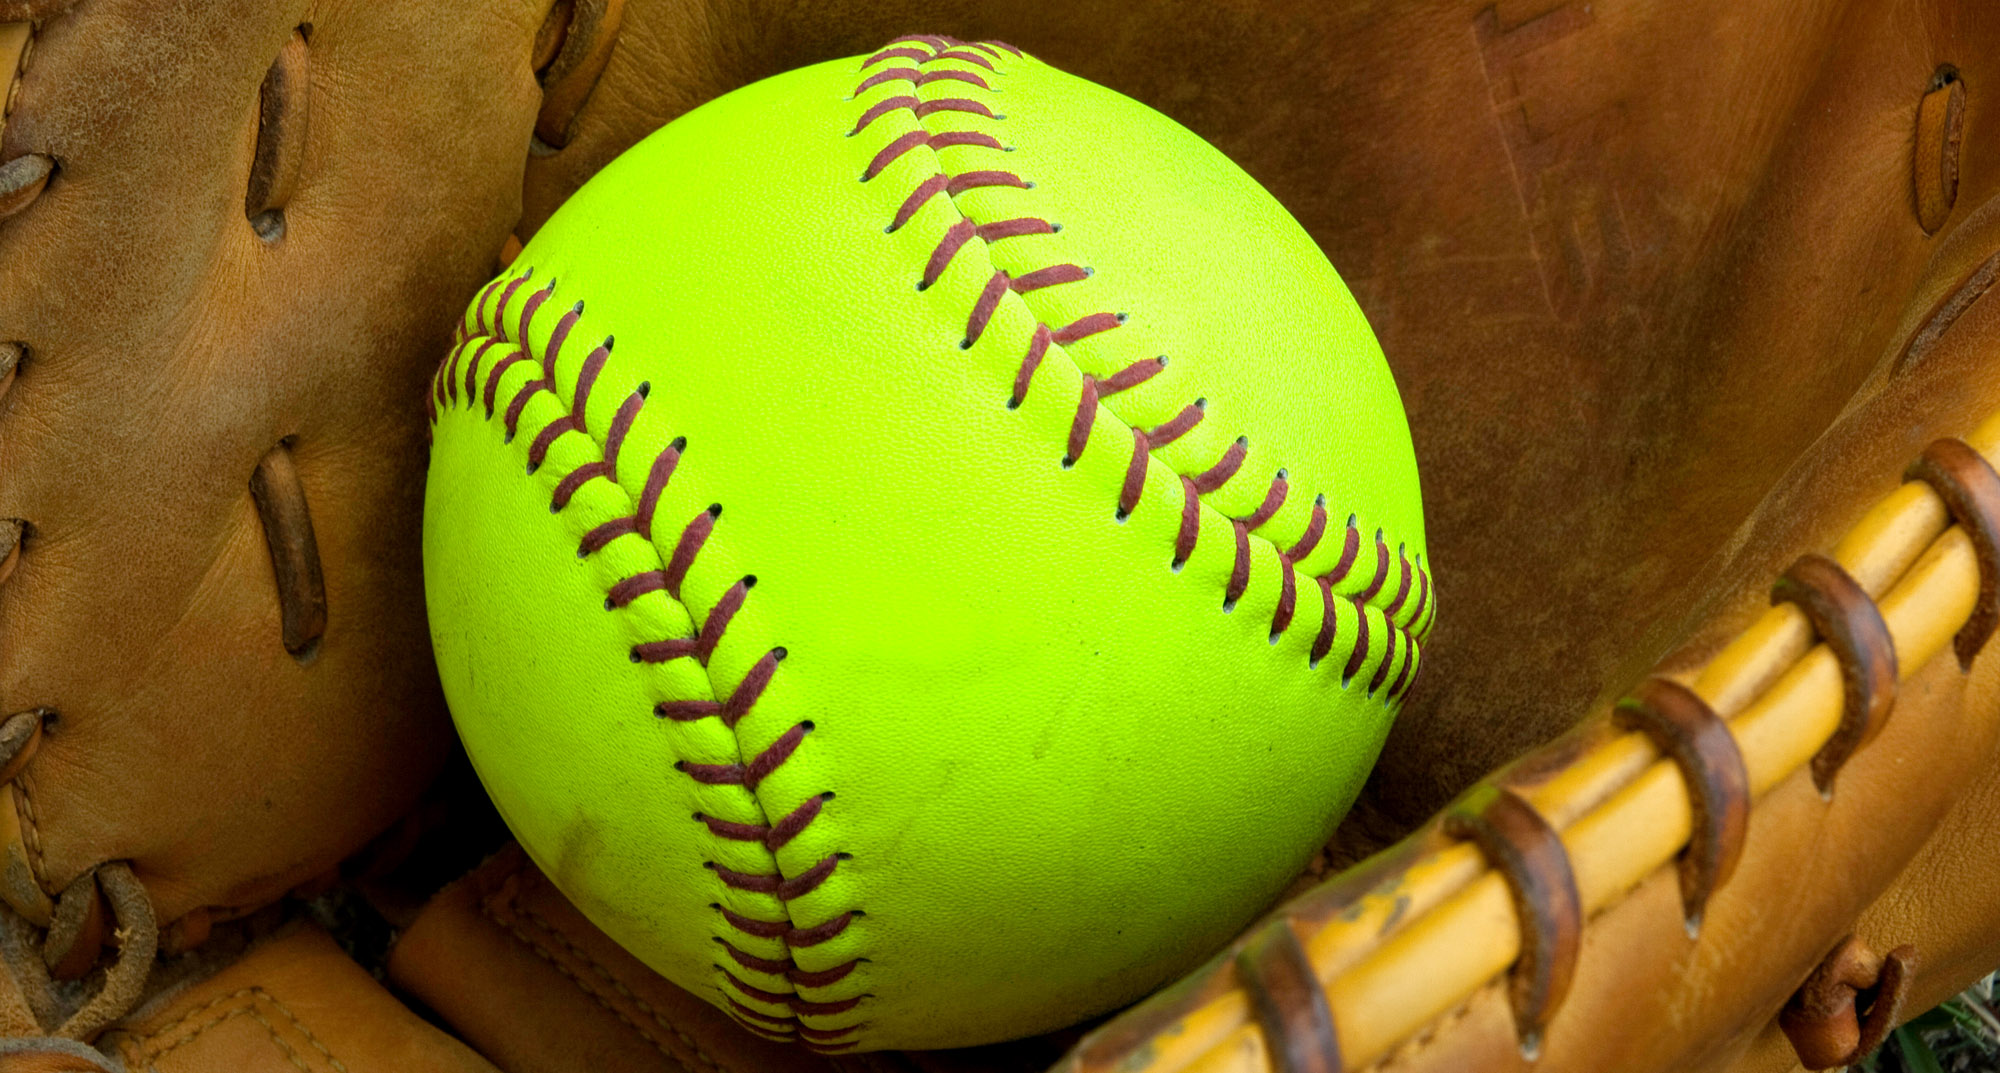 Softball Images Photos Download For Android Desktop FHDQ 2000x1073